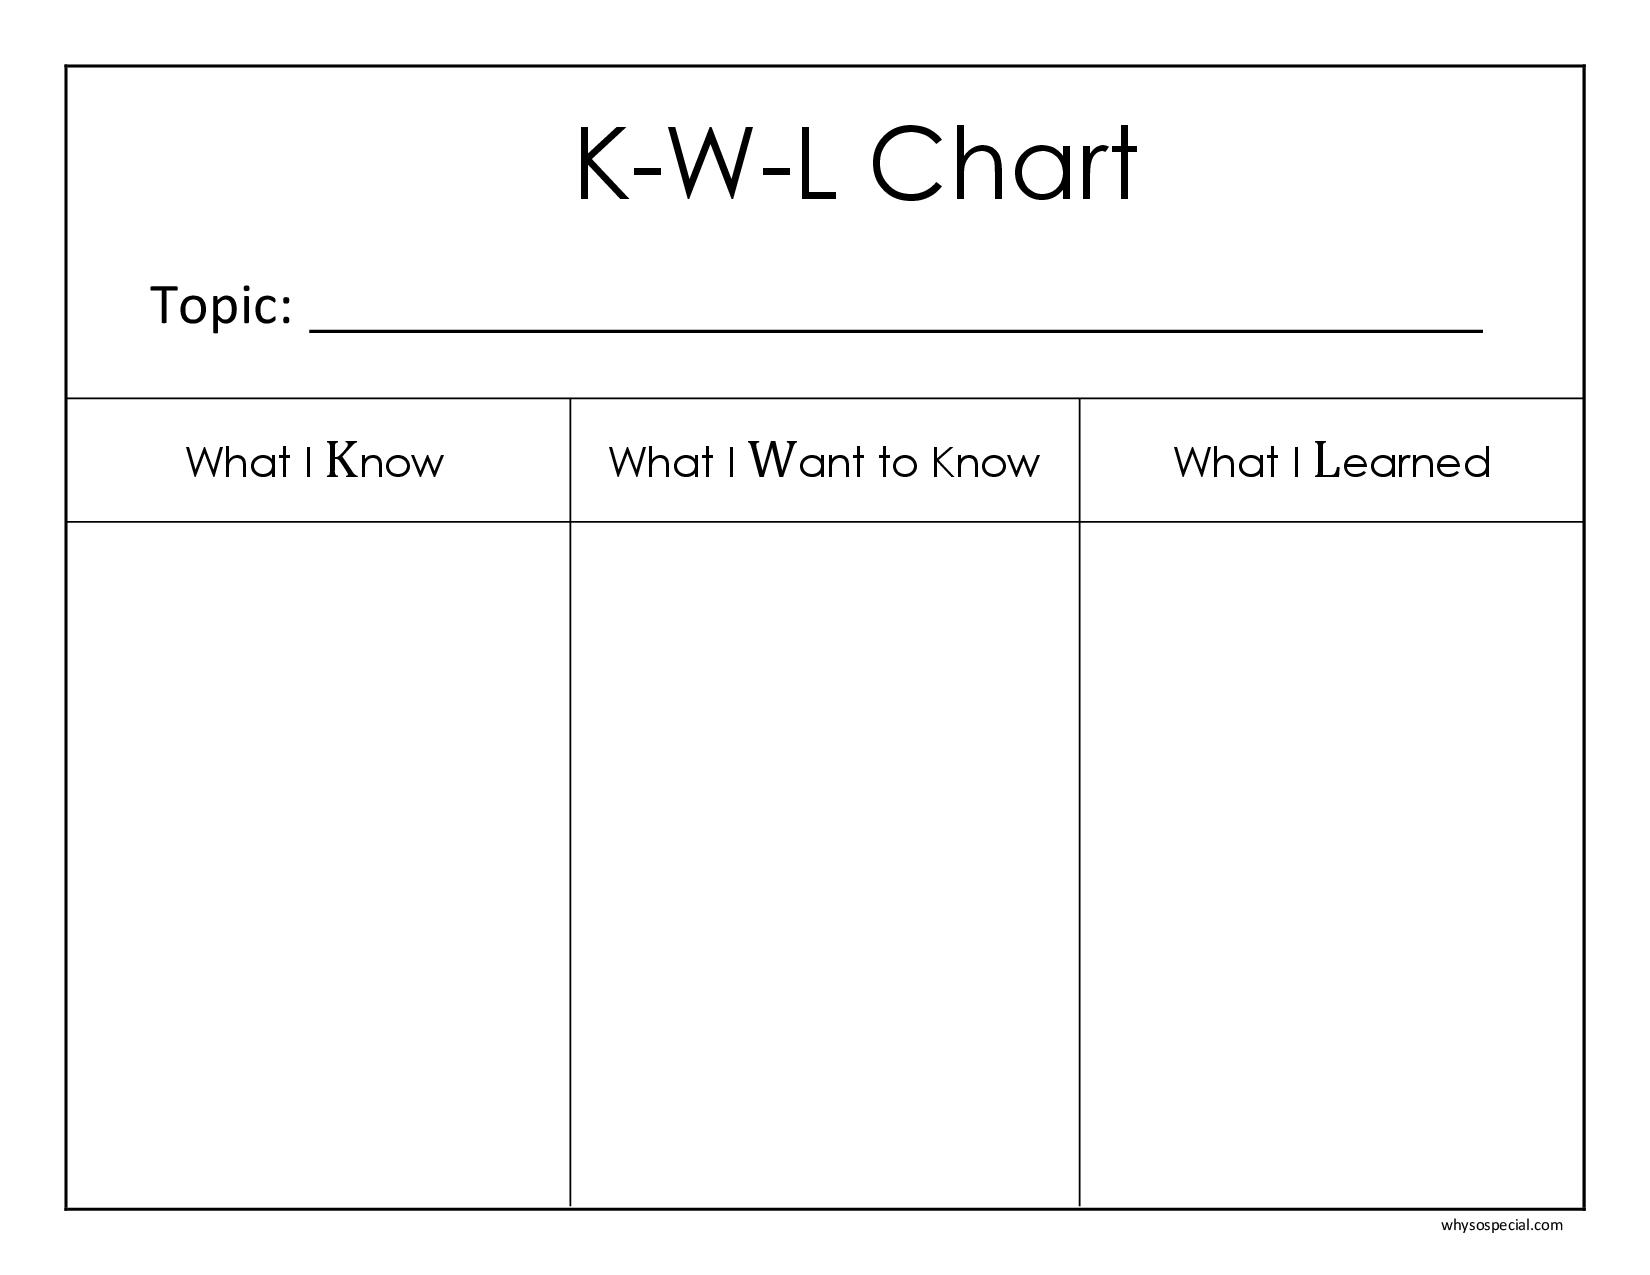 photograph about Free Printable Kwl Chart named Totally free Printable Kwl Chart cell discoveries